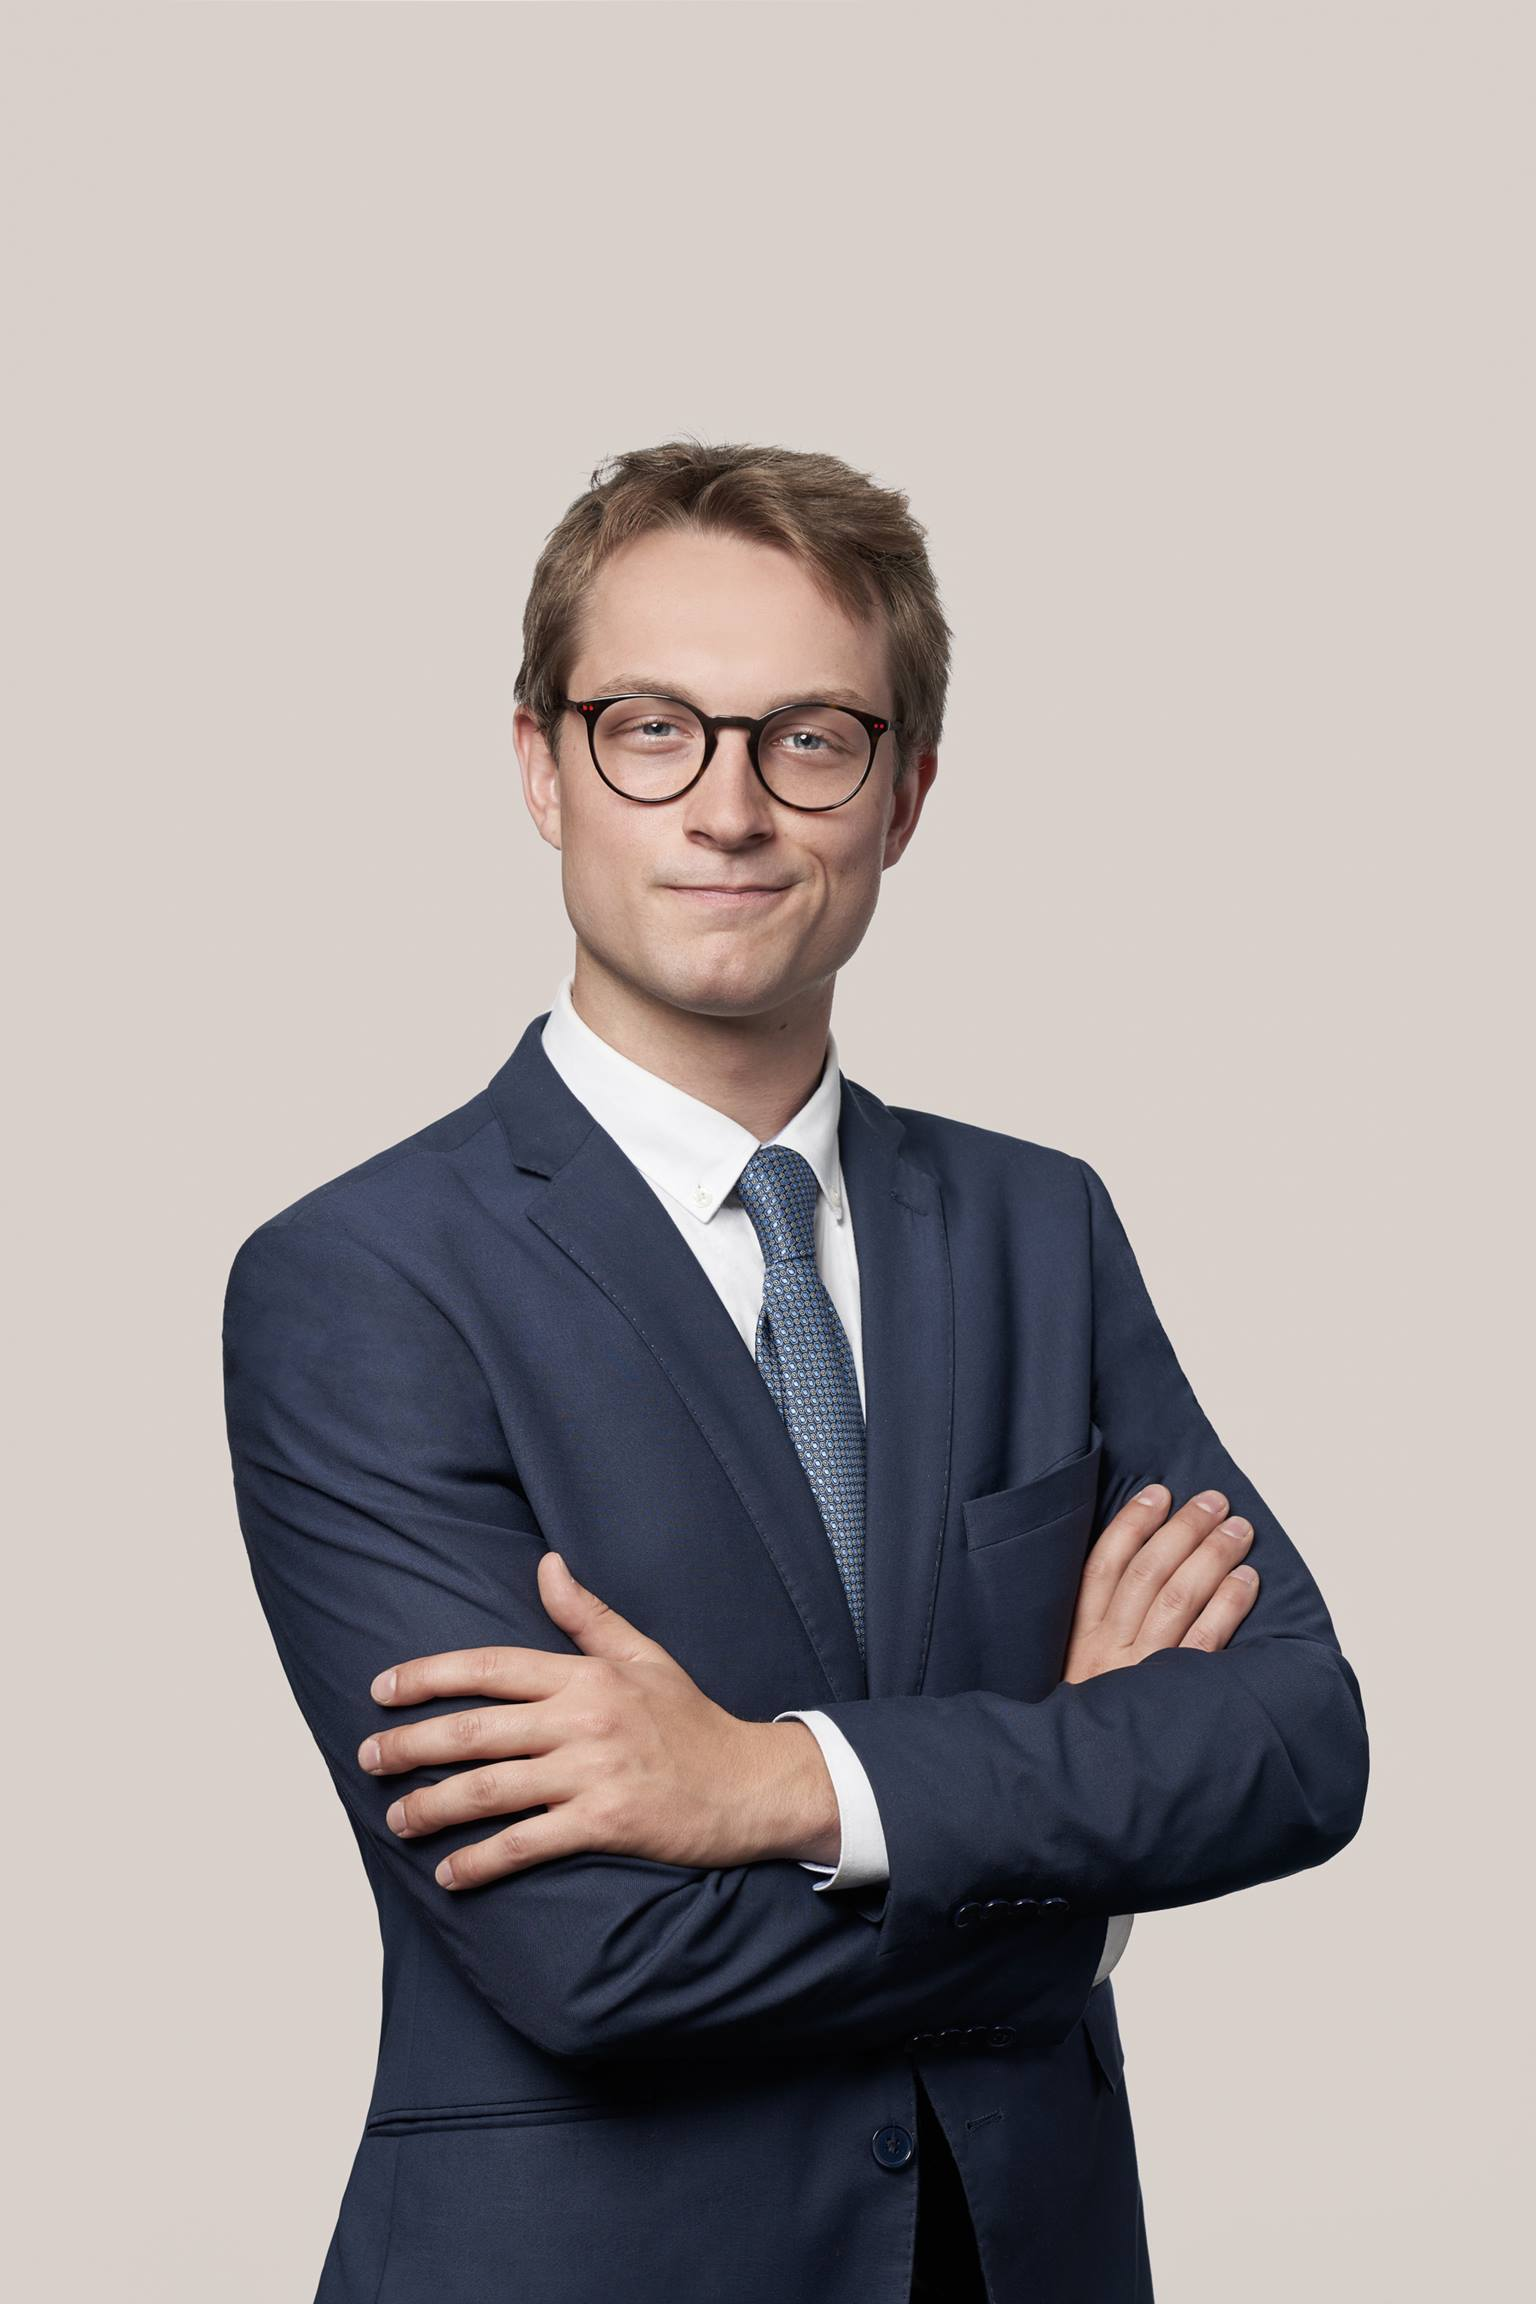 Alexandre Thibault | Articling Law Student in Québec City